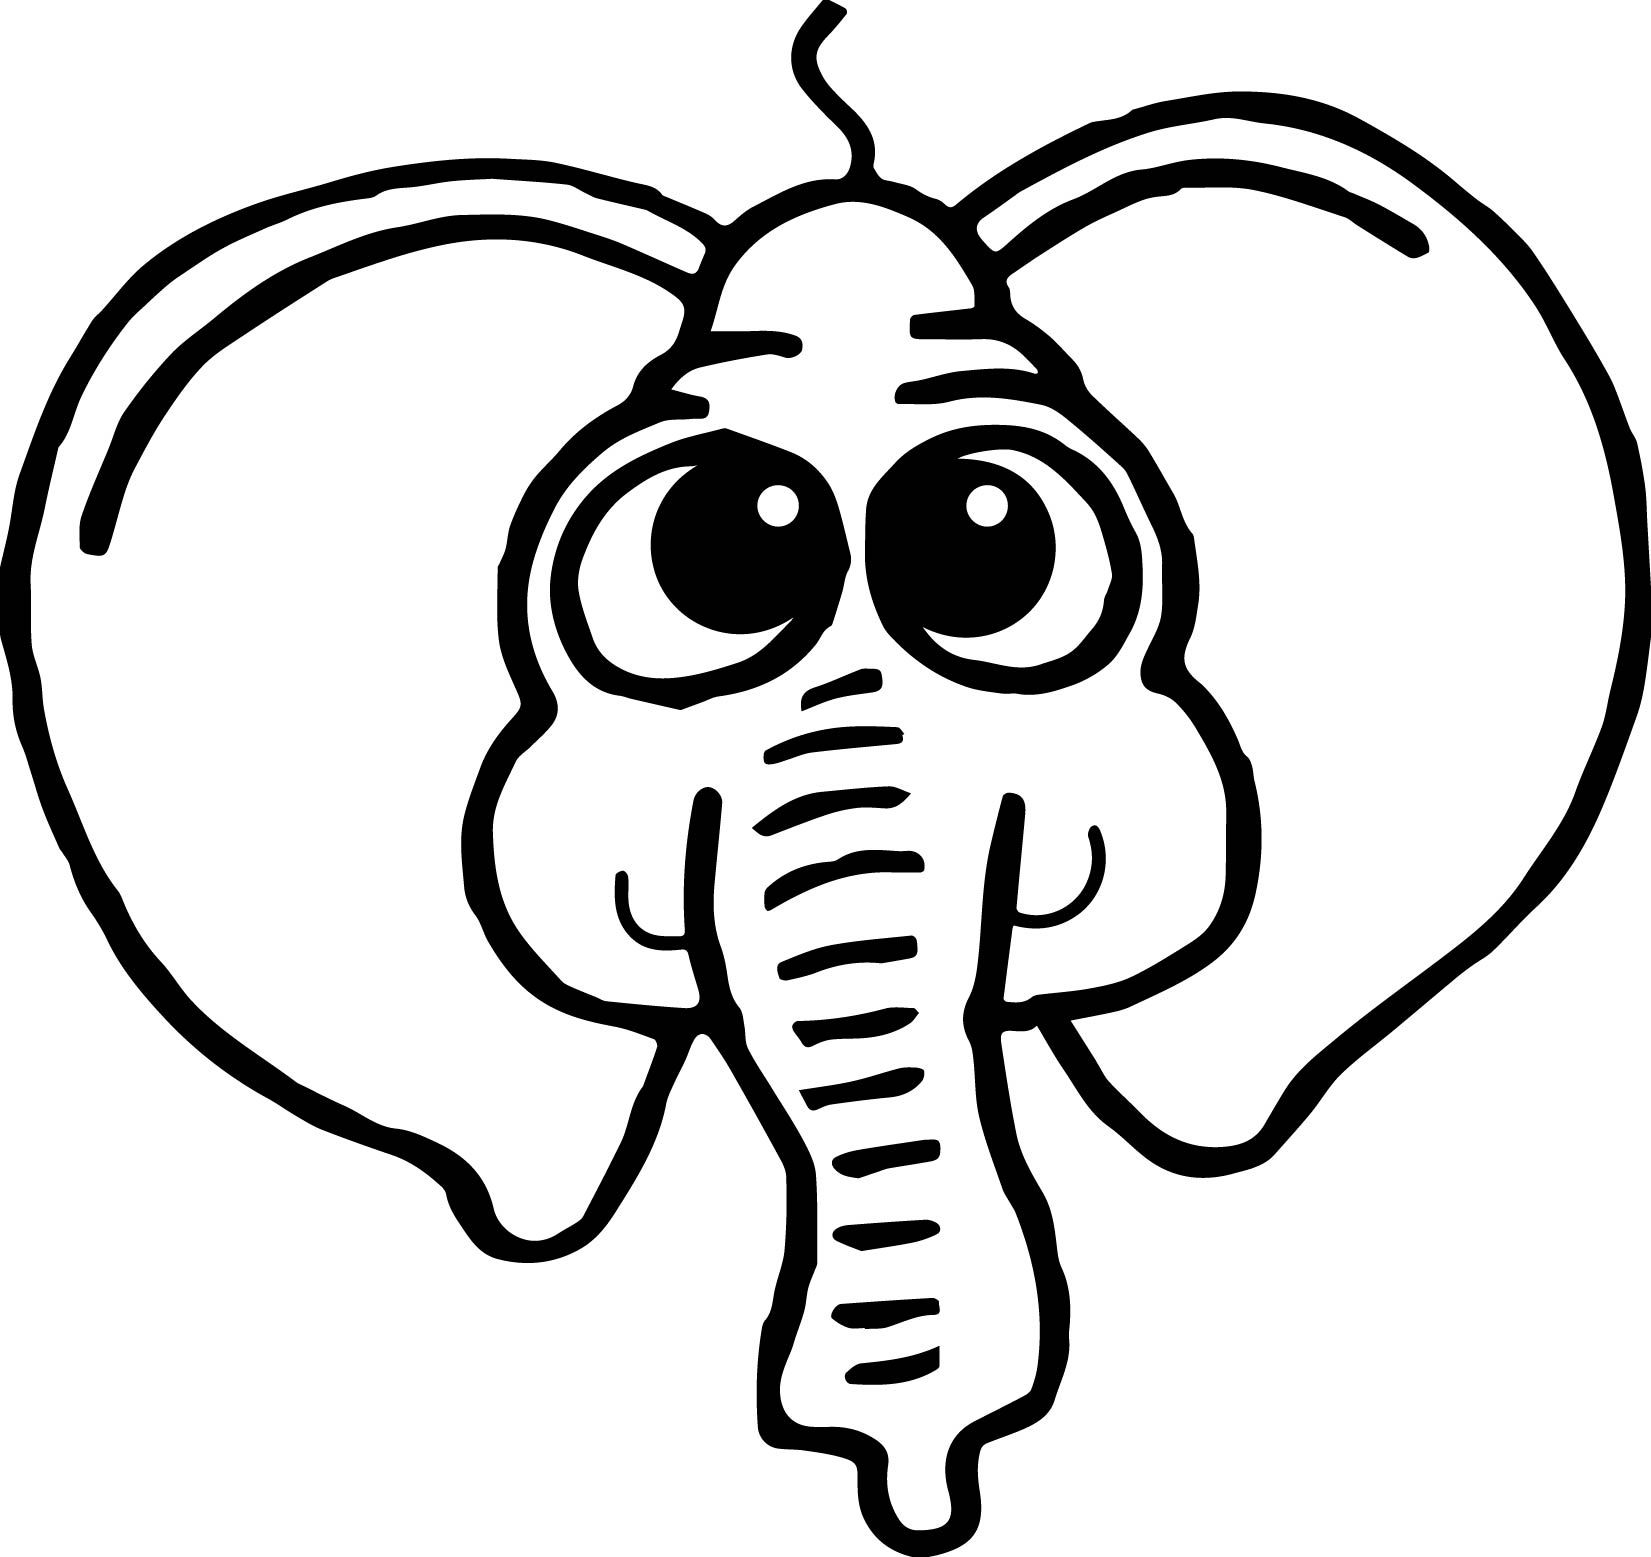 Nice Cartoon Elephant Face Coloring Page Elephant Face Cartoon